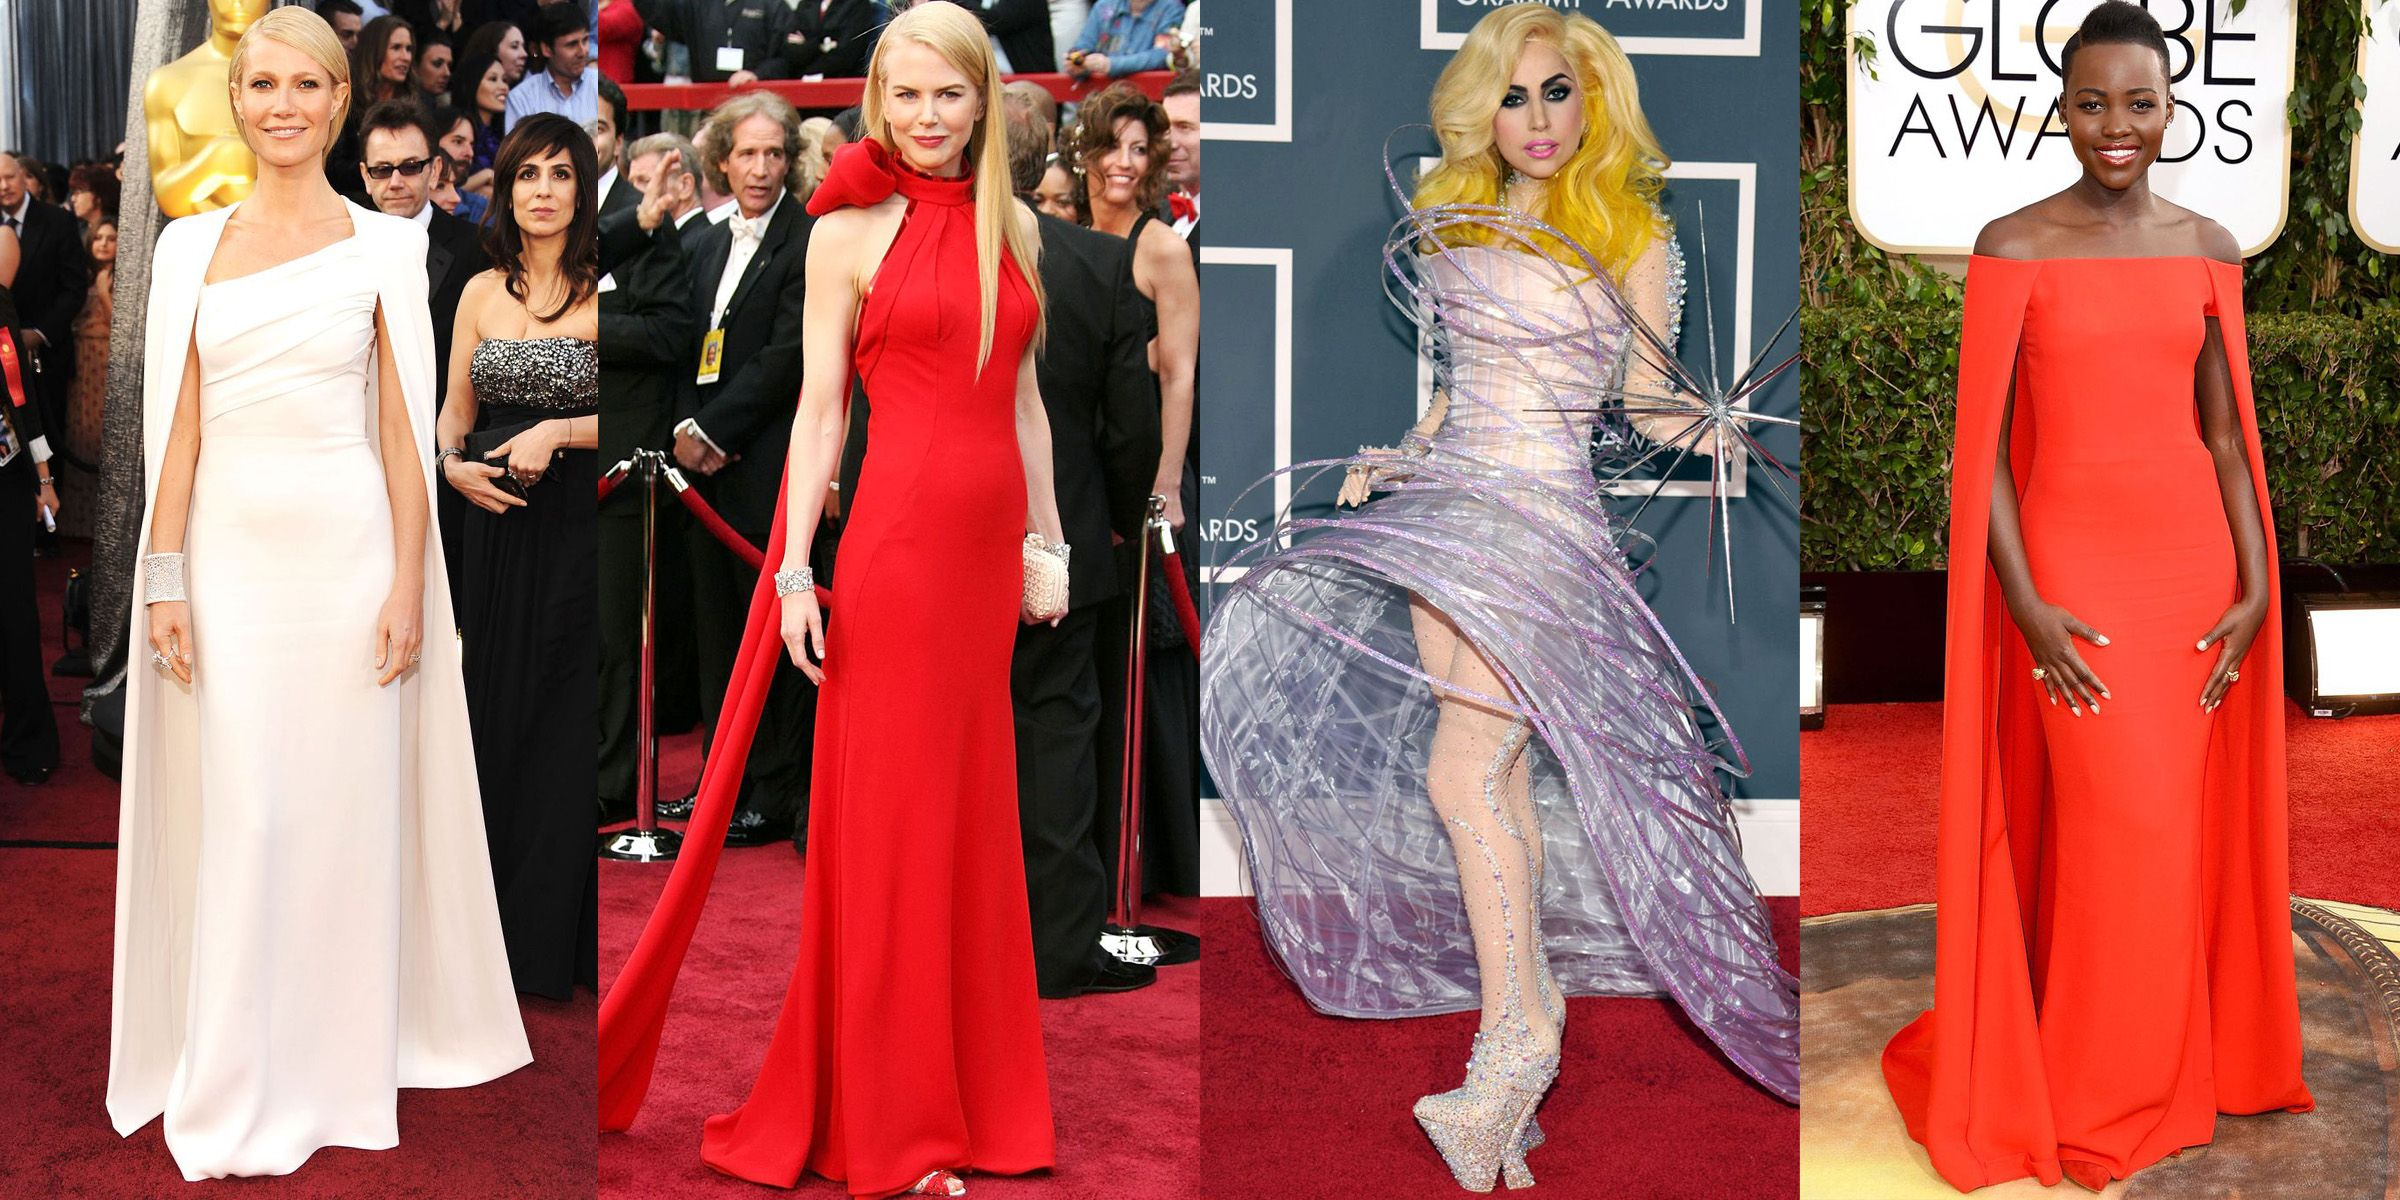 The 100 Best Red Carpet Gowns of All Time